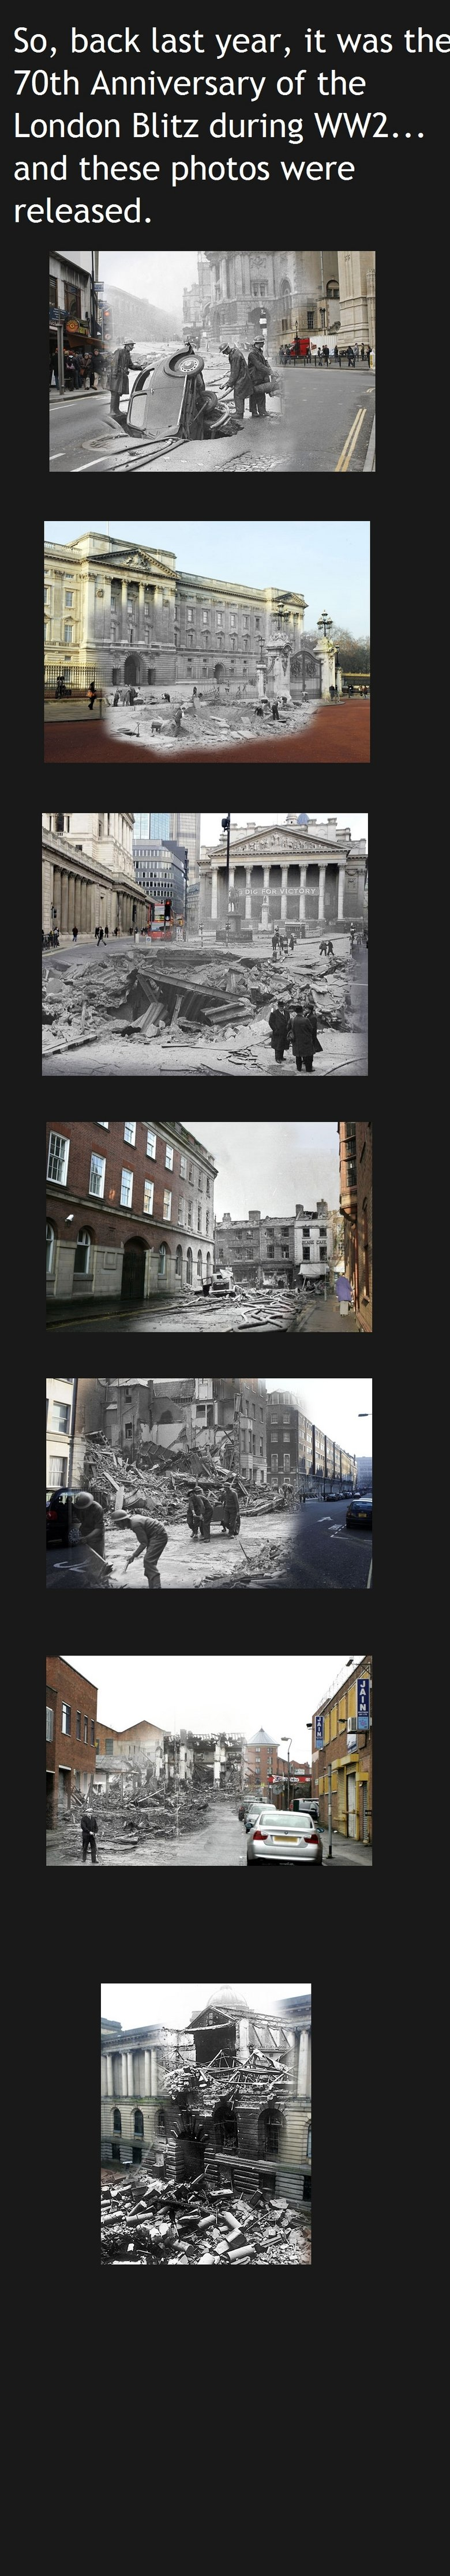 Blitz to modern. I hope you guys found this interesting... So, back last year, it was the 70th Anniversary of the London Blitz during WWY... and these photos we